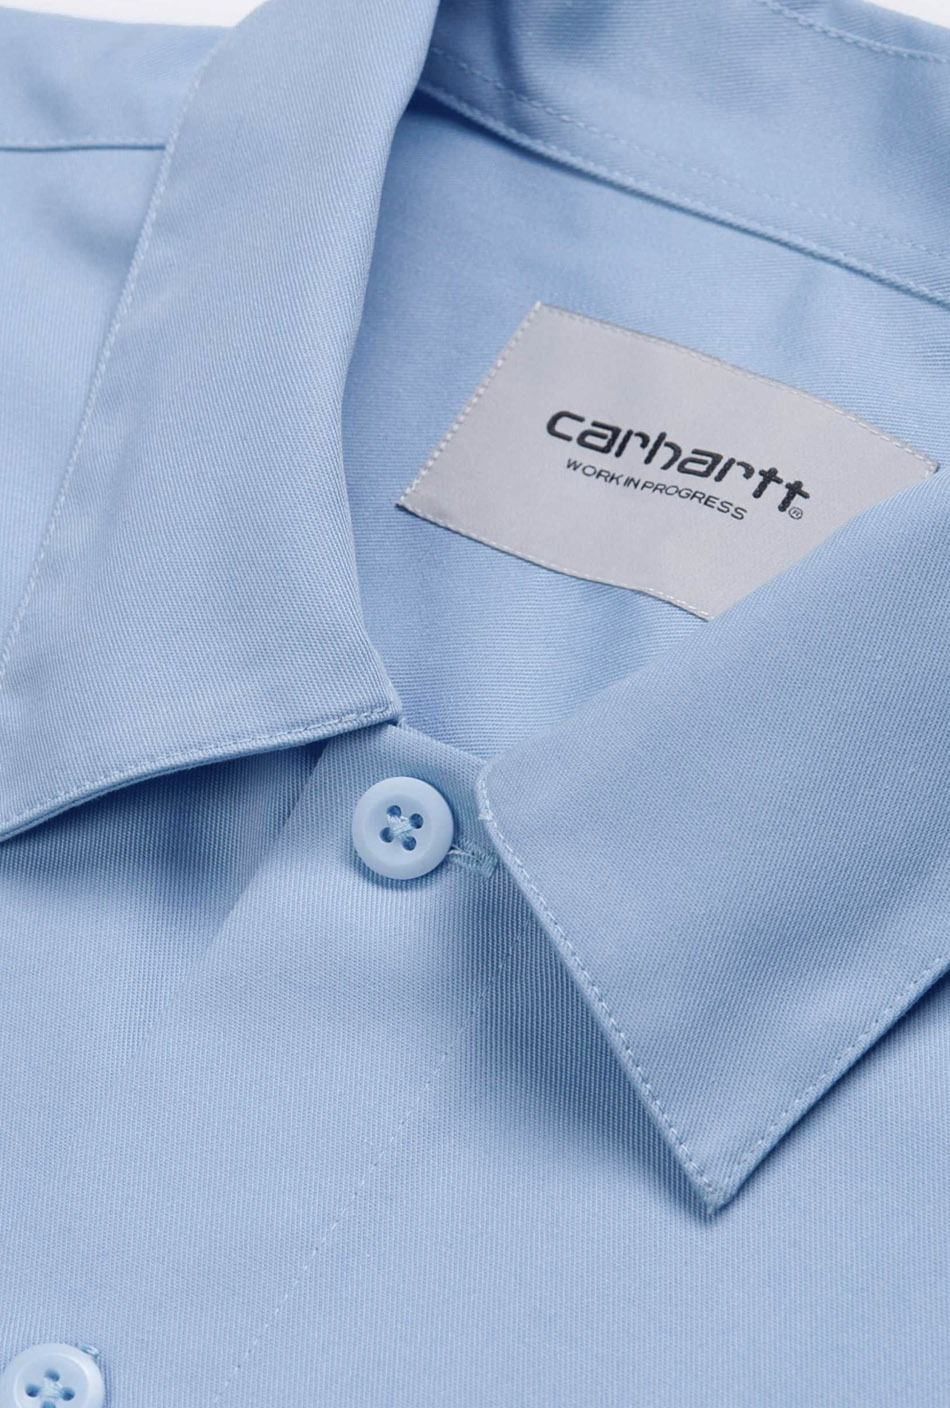 Carhartt Master Shirt Citizen